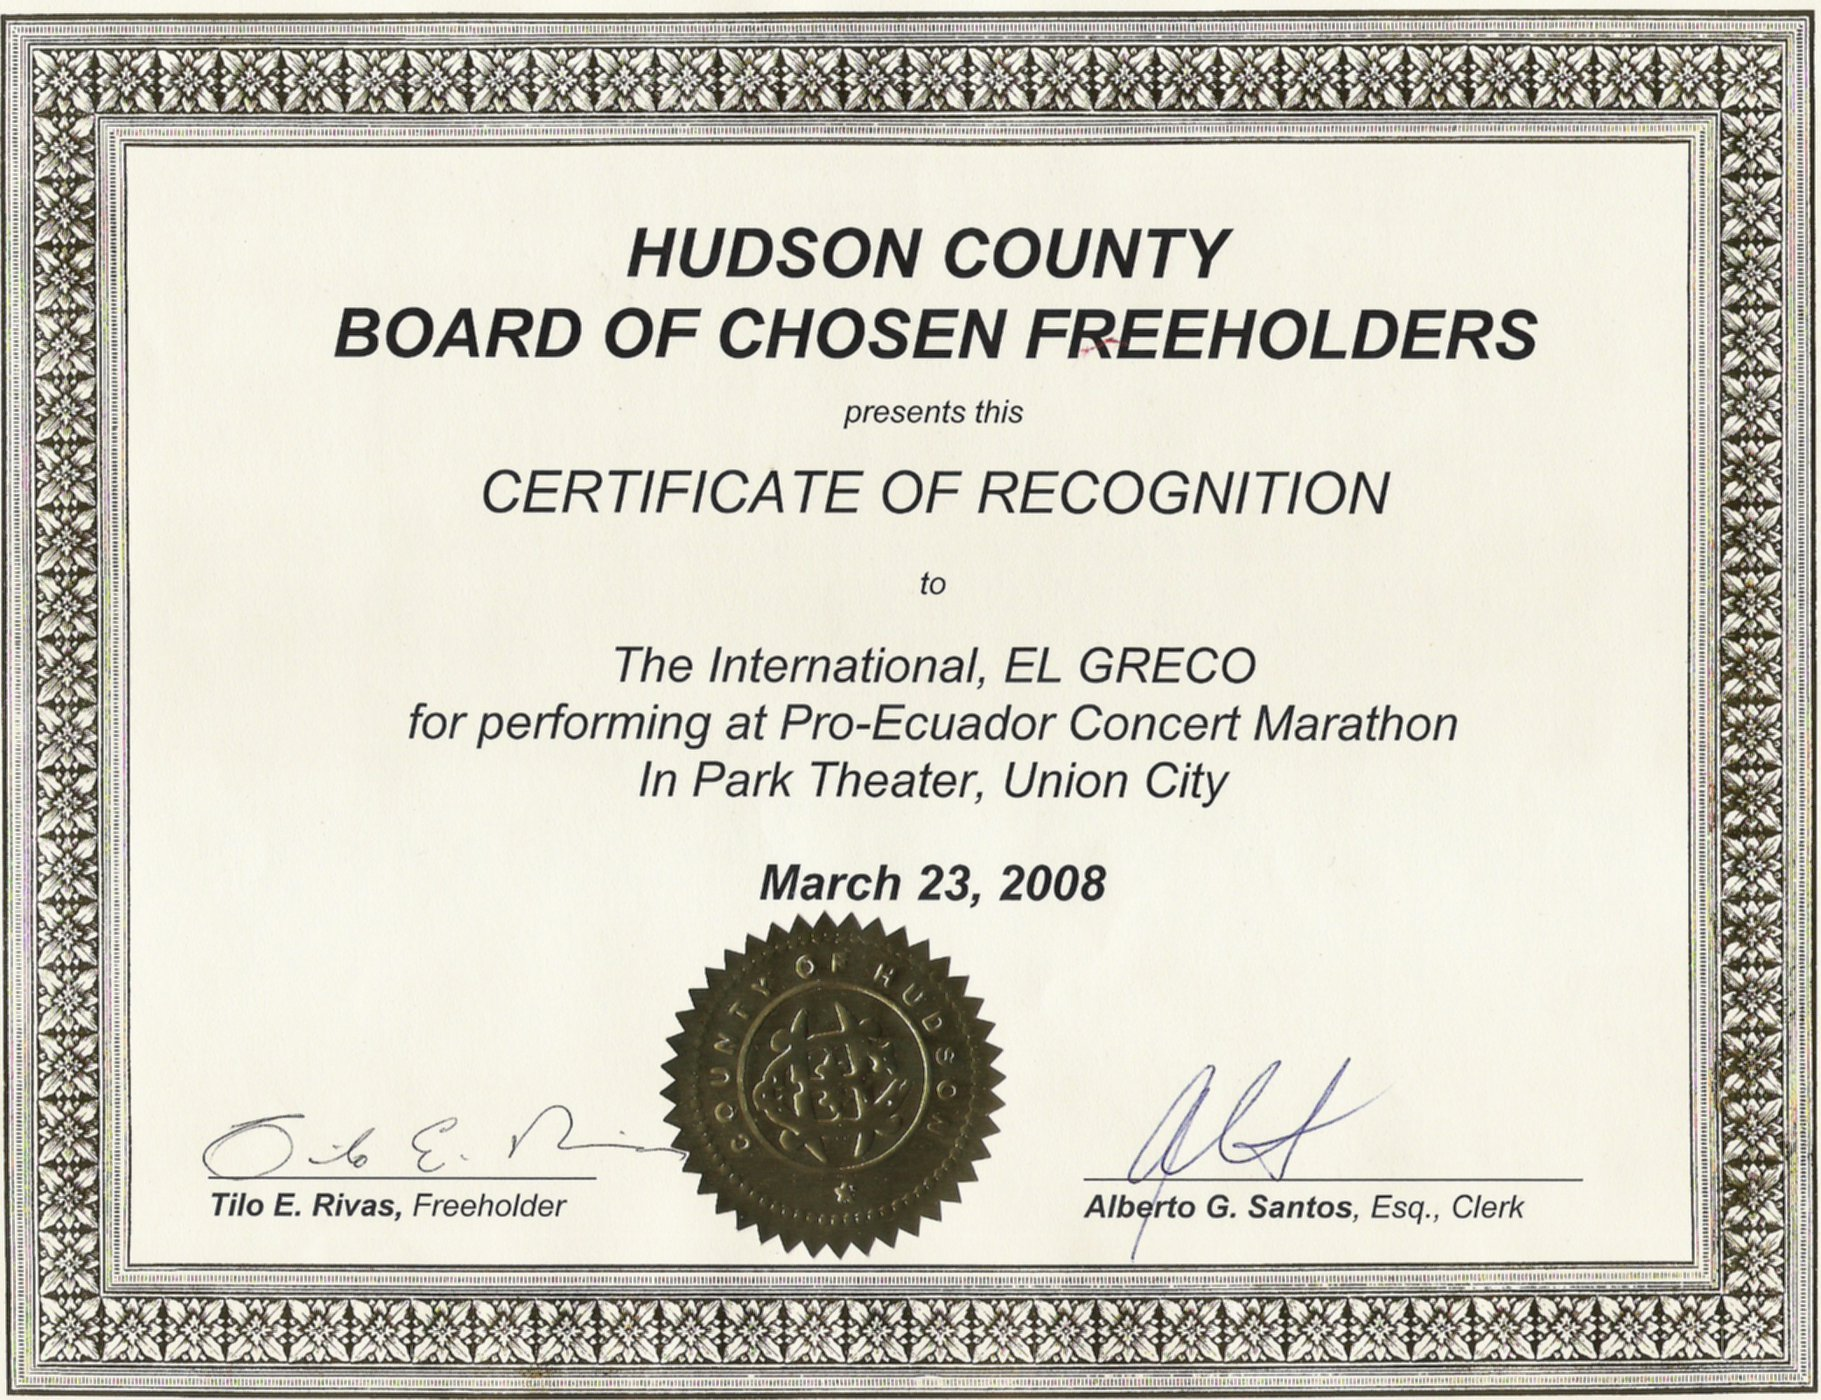 greco concert and marathon in union city